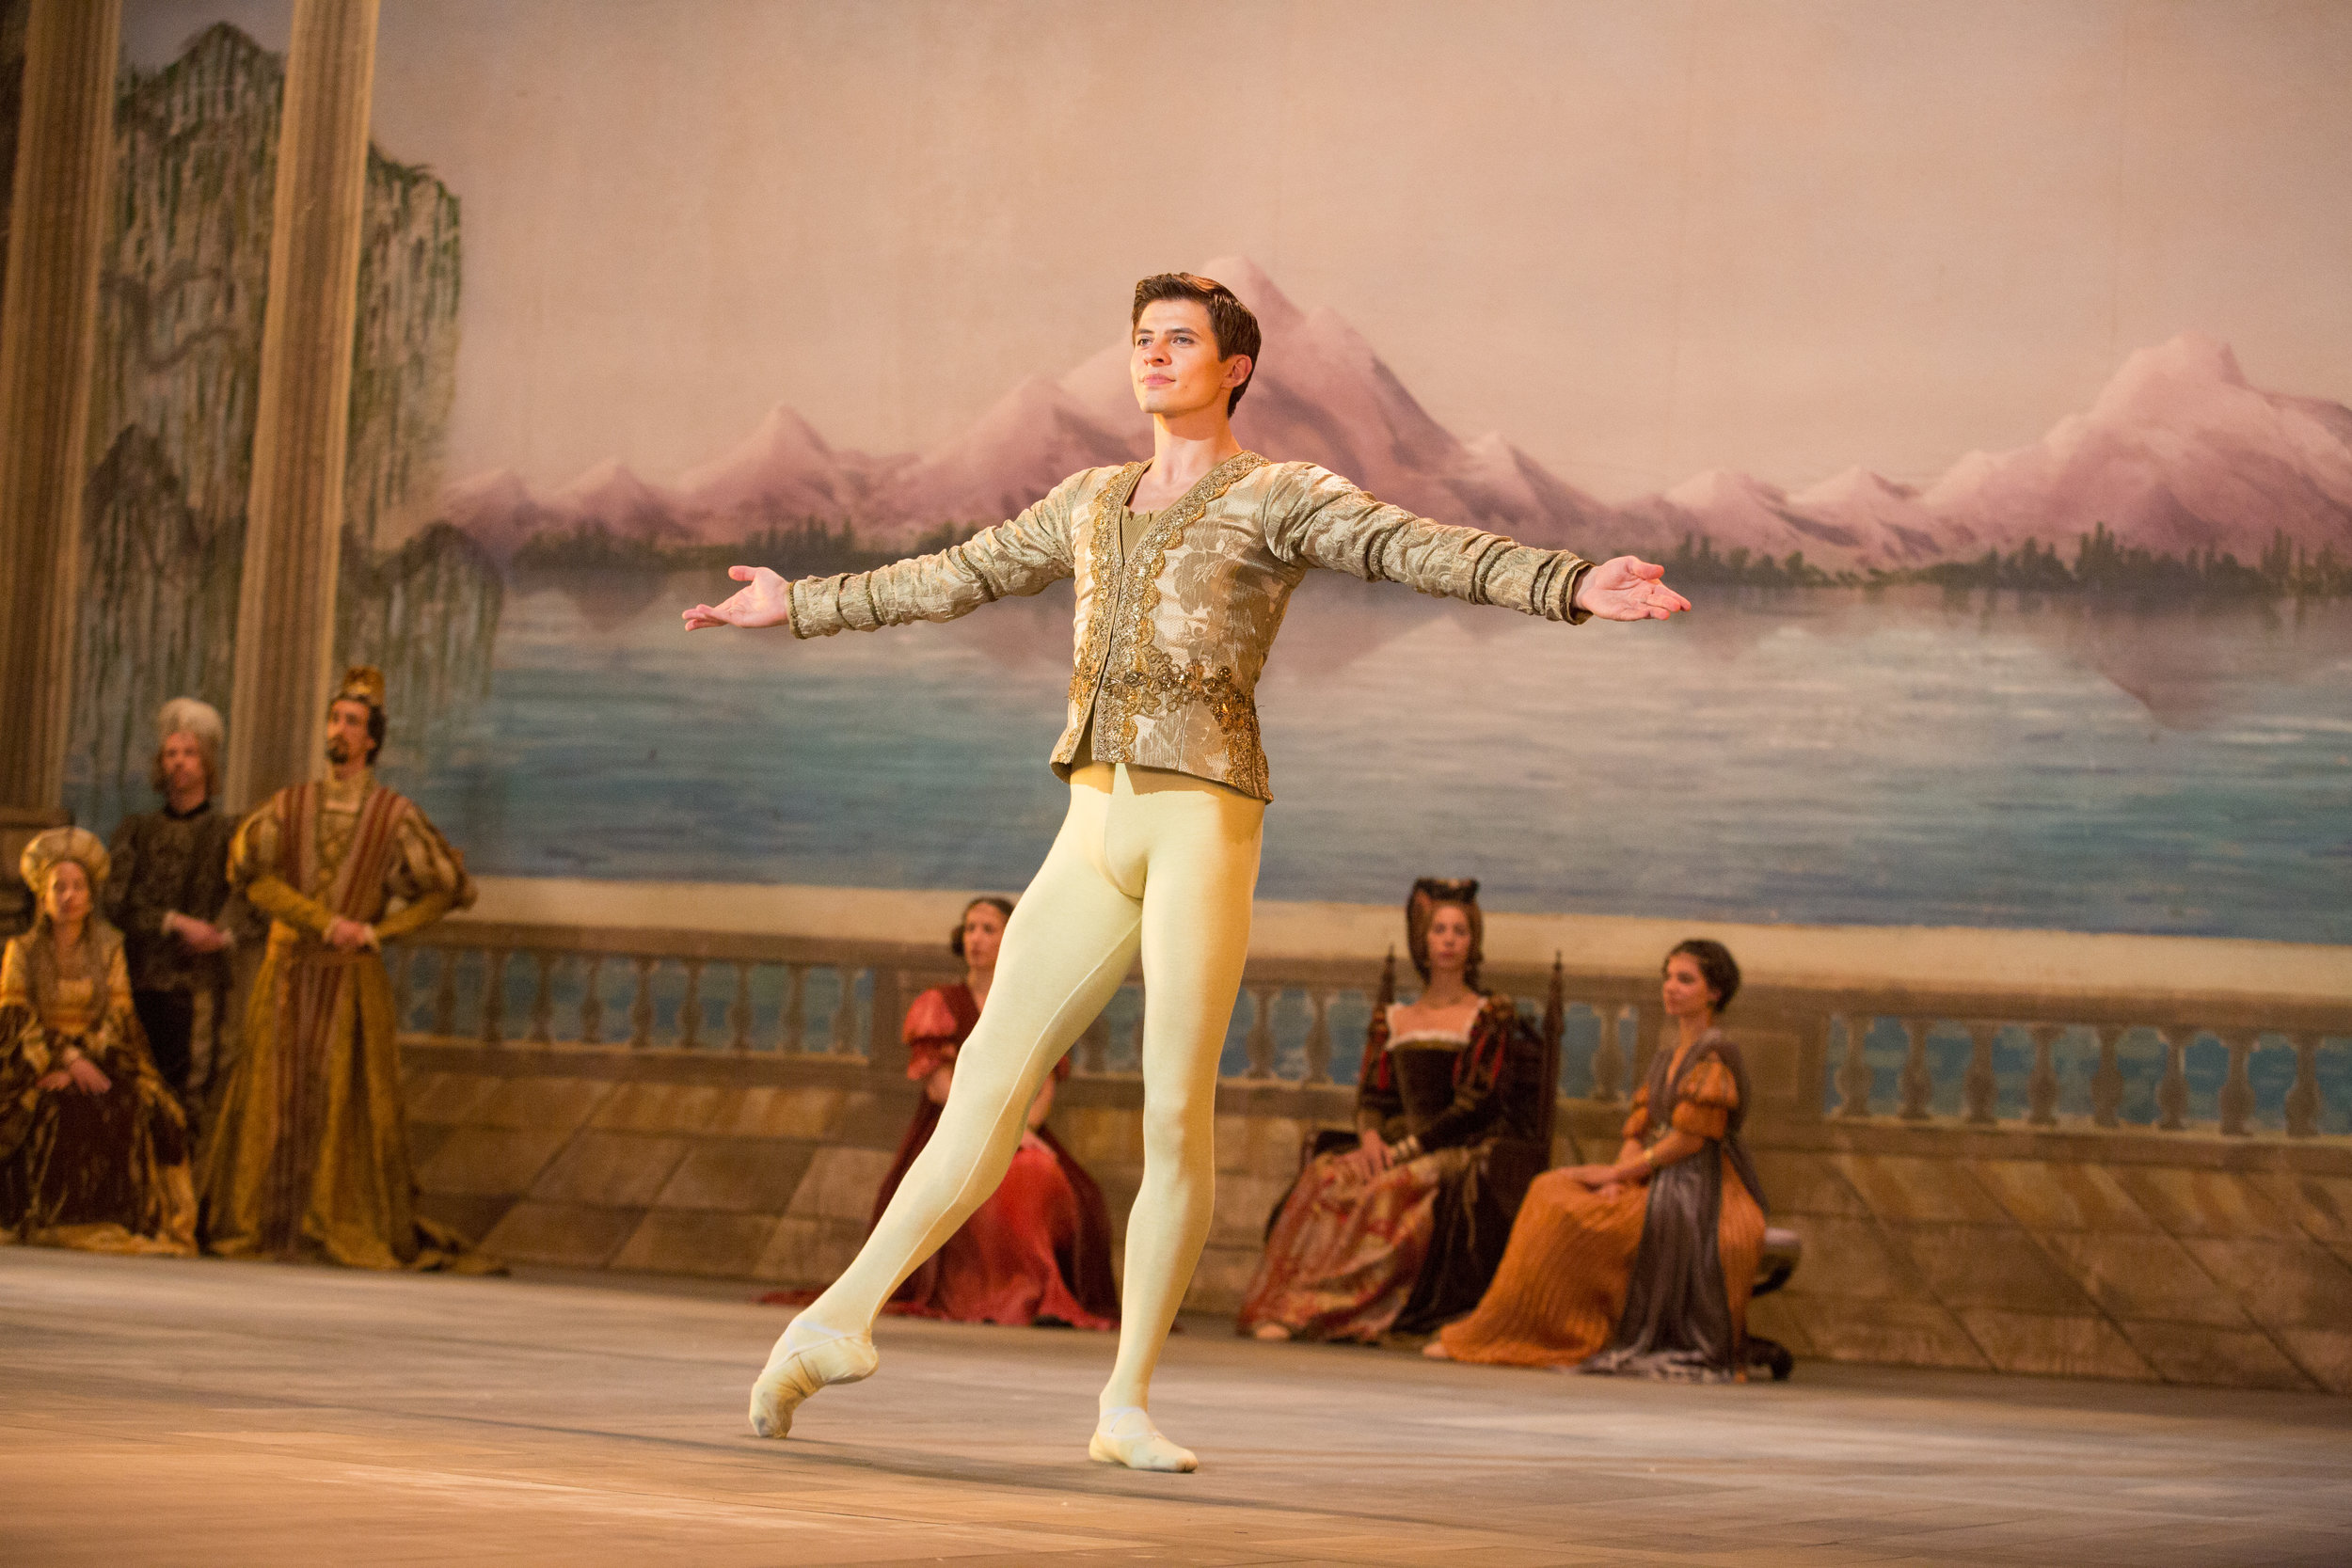 """Ukrainian dancer Oleg Ivenko plays Russian ballet icon Rudolf Nureyev in director Ralph Fiennes' biographical drama """"The White Crow."""" (Photo by Larry Horrocks, courtesy Sony Pictures Classics.)"""